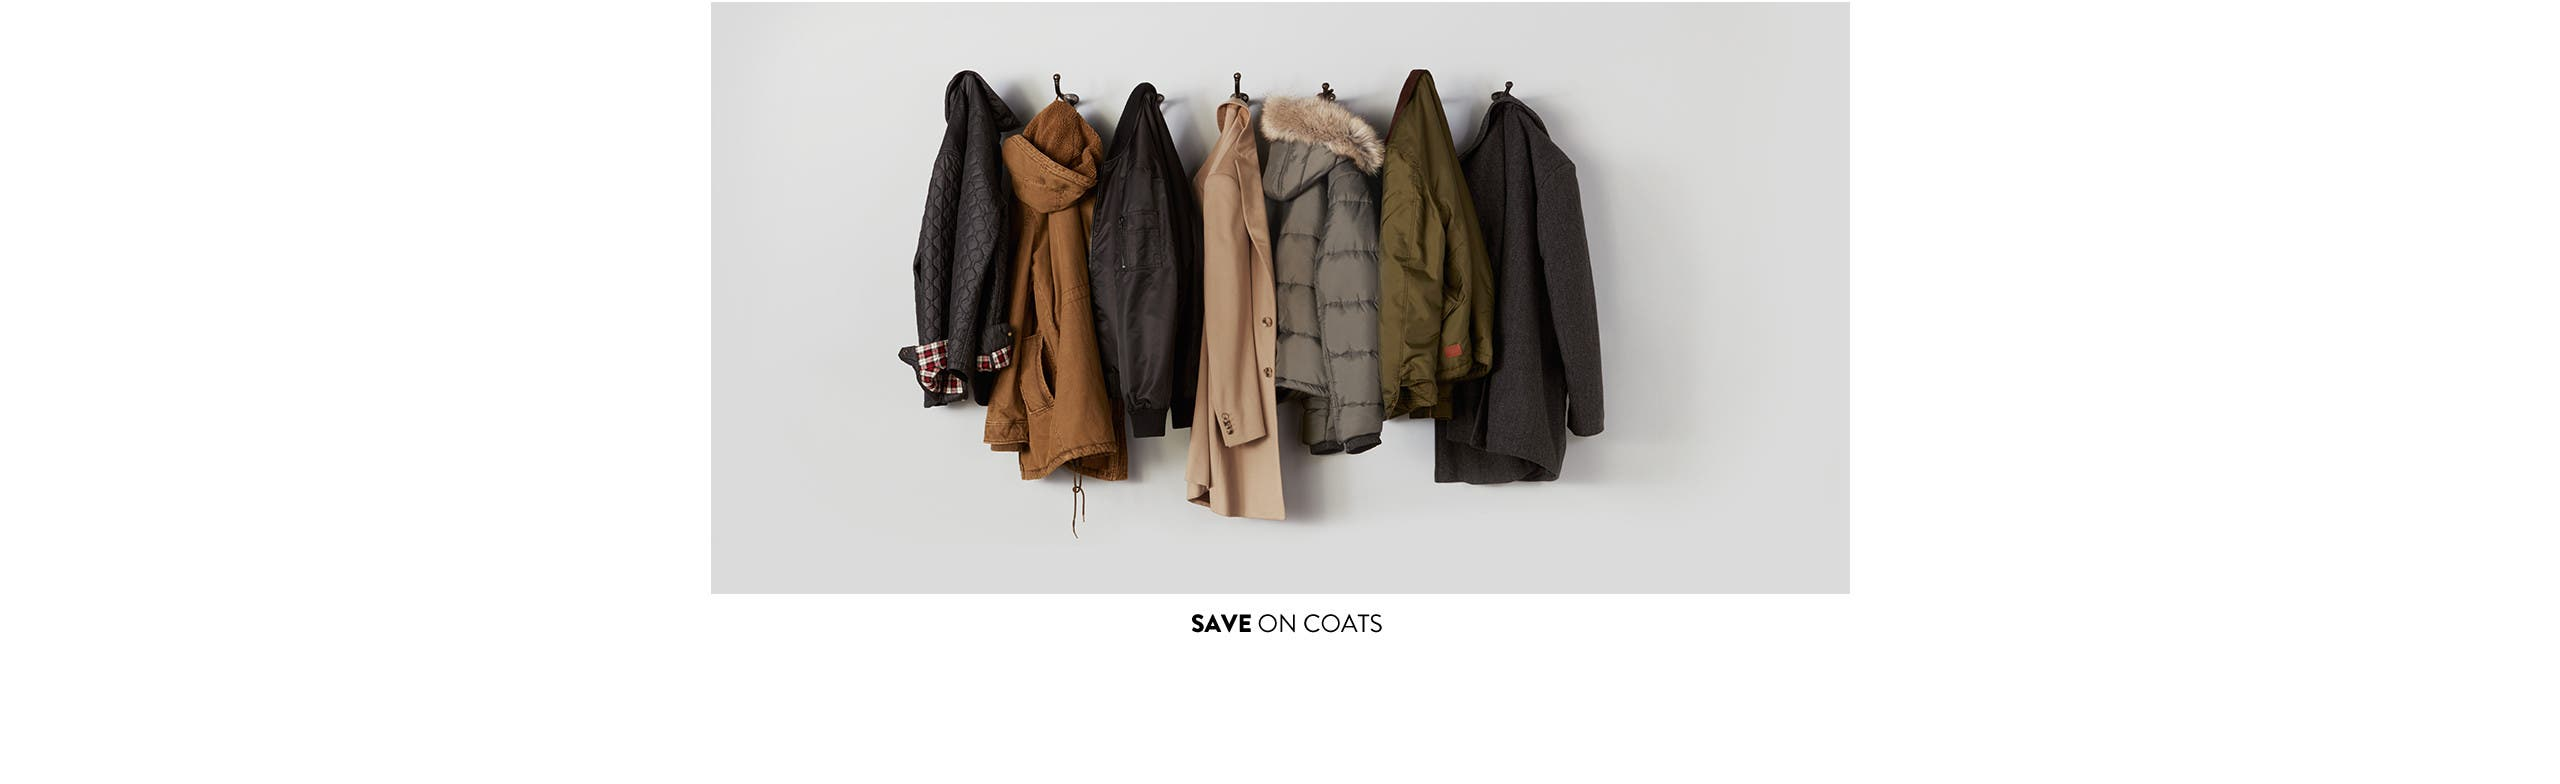 Save on coats for women, men and kids.